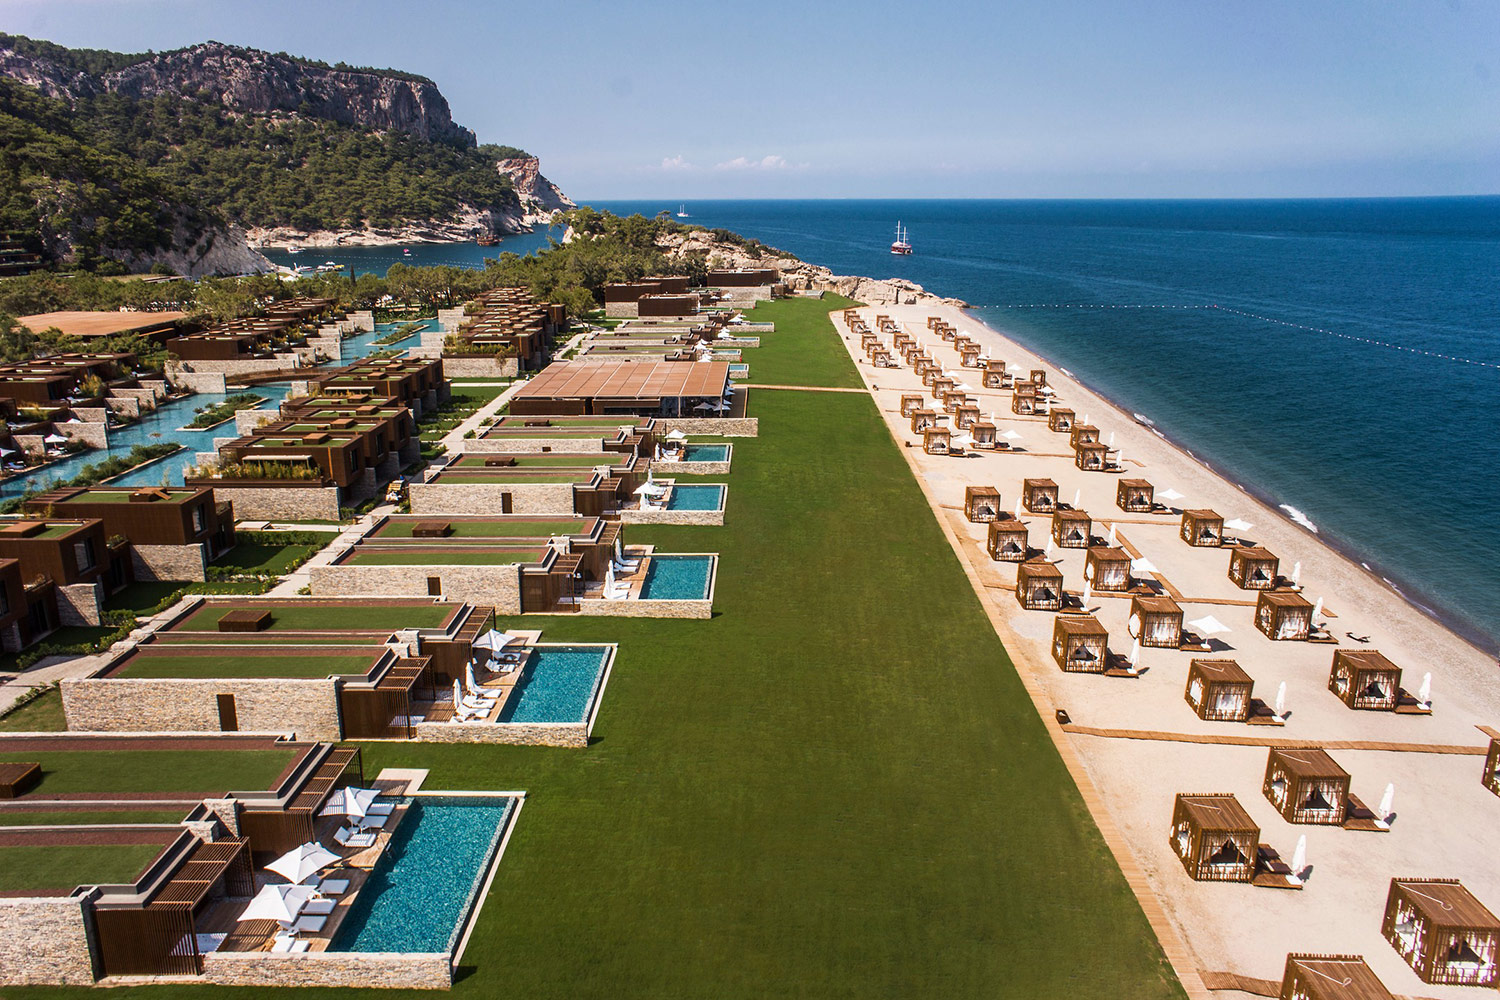 maxx royal resorts bahce peyzaj 2